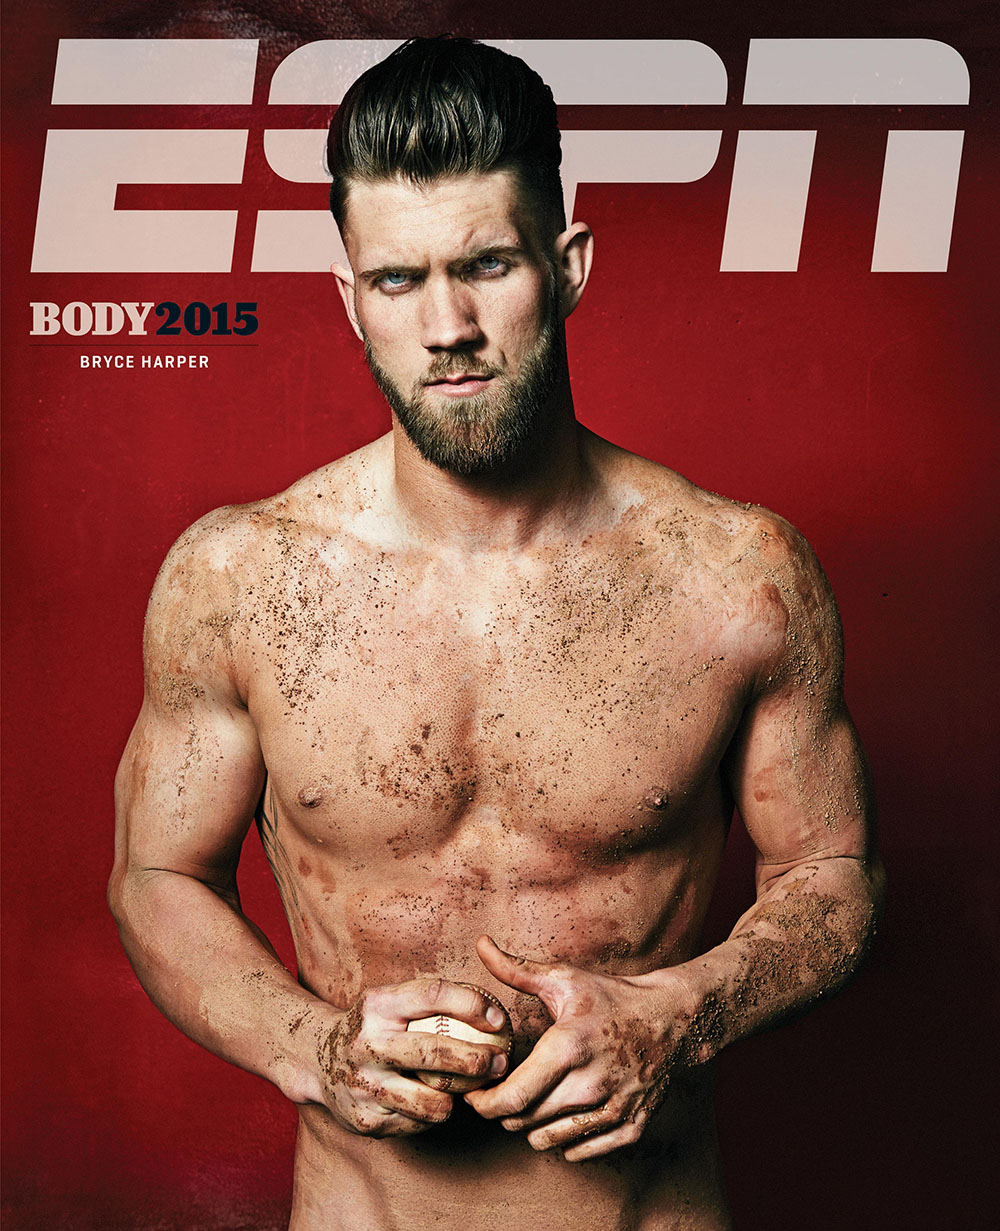 Photography News - Stunning sporty nudes by ESPN Bryce Harper photographed by Peter Hapak